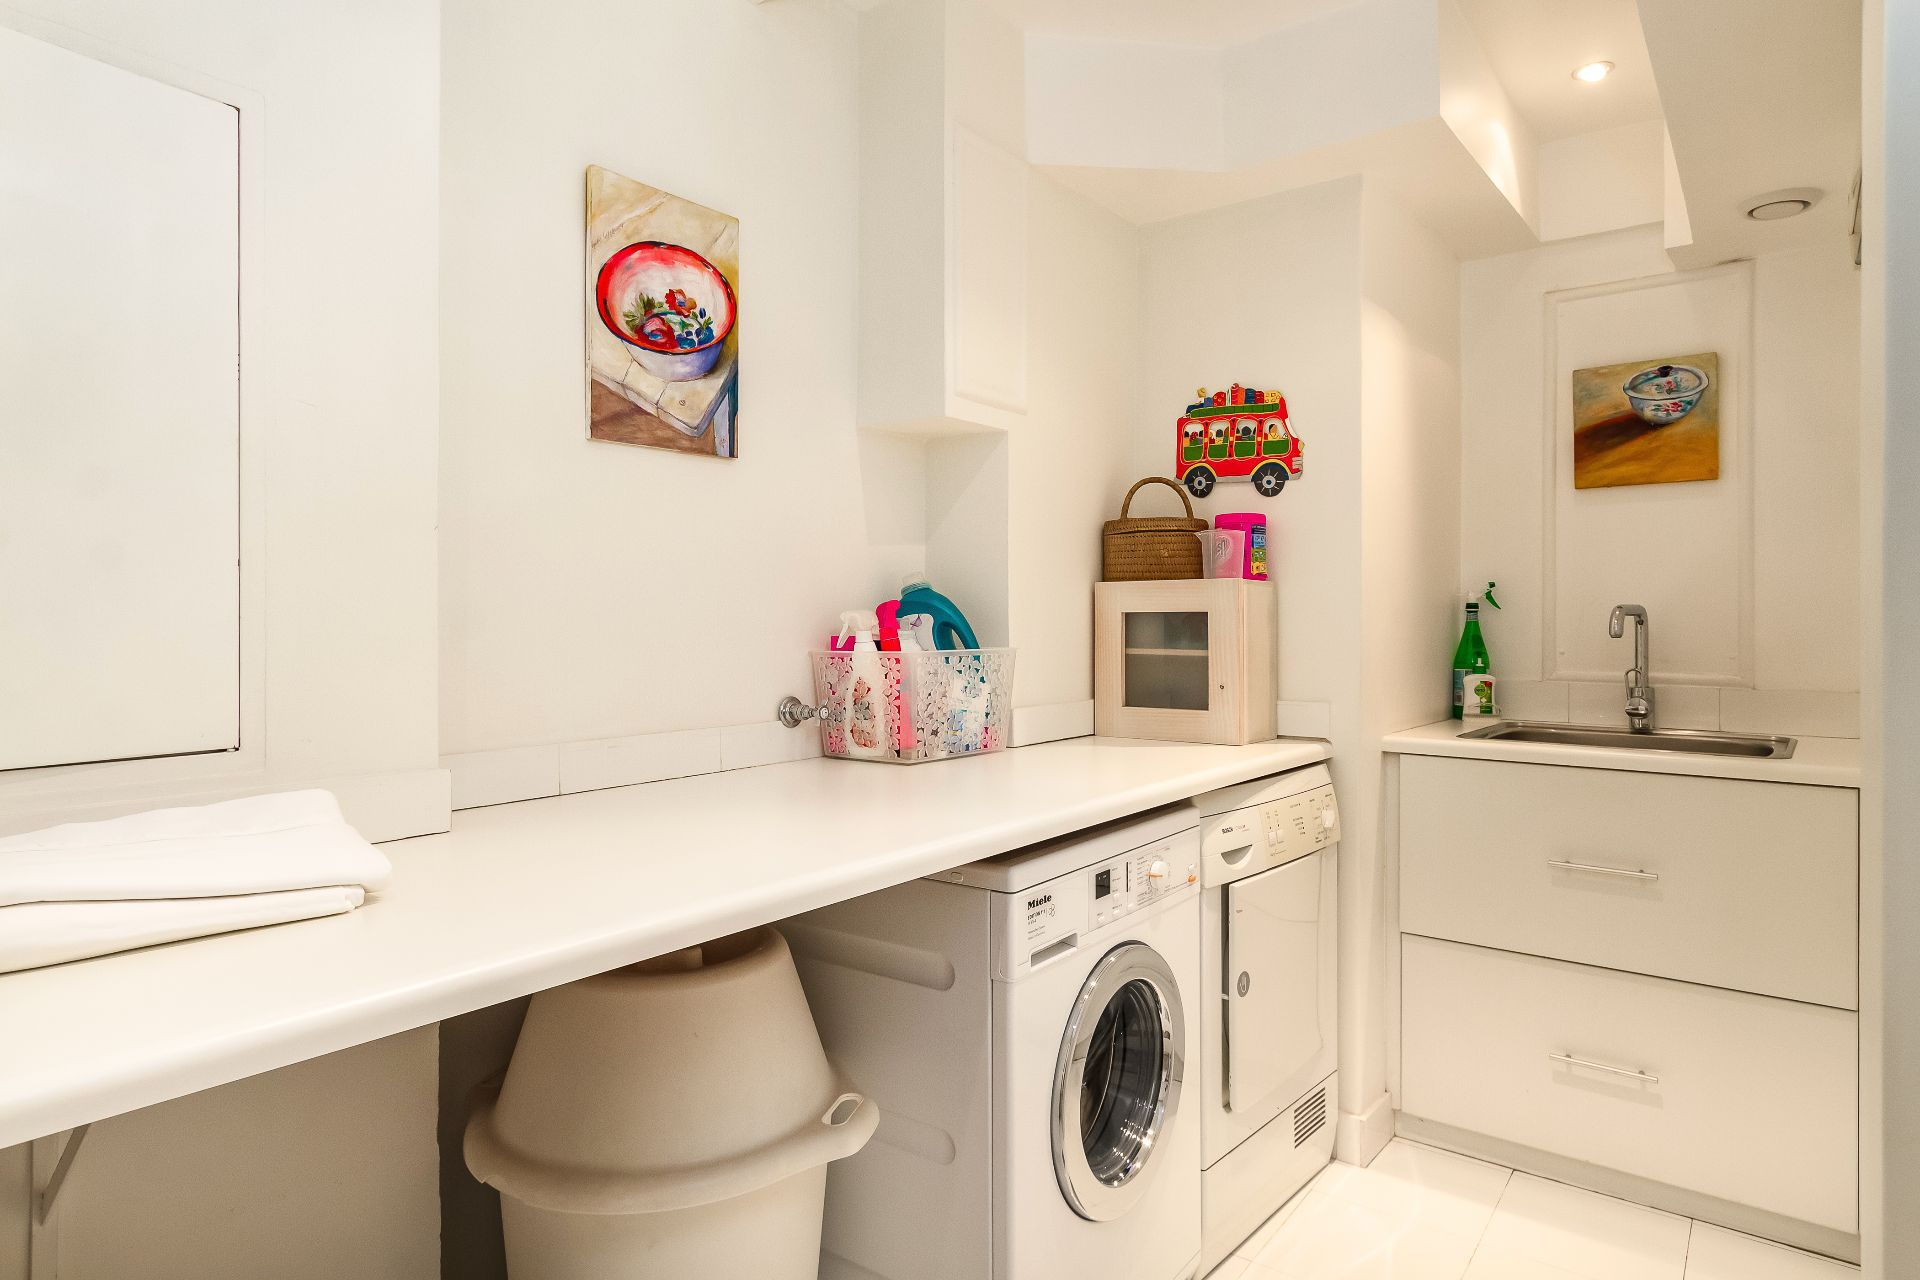 House in Clifton - Laundry room